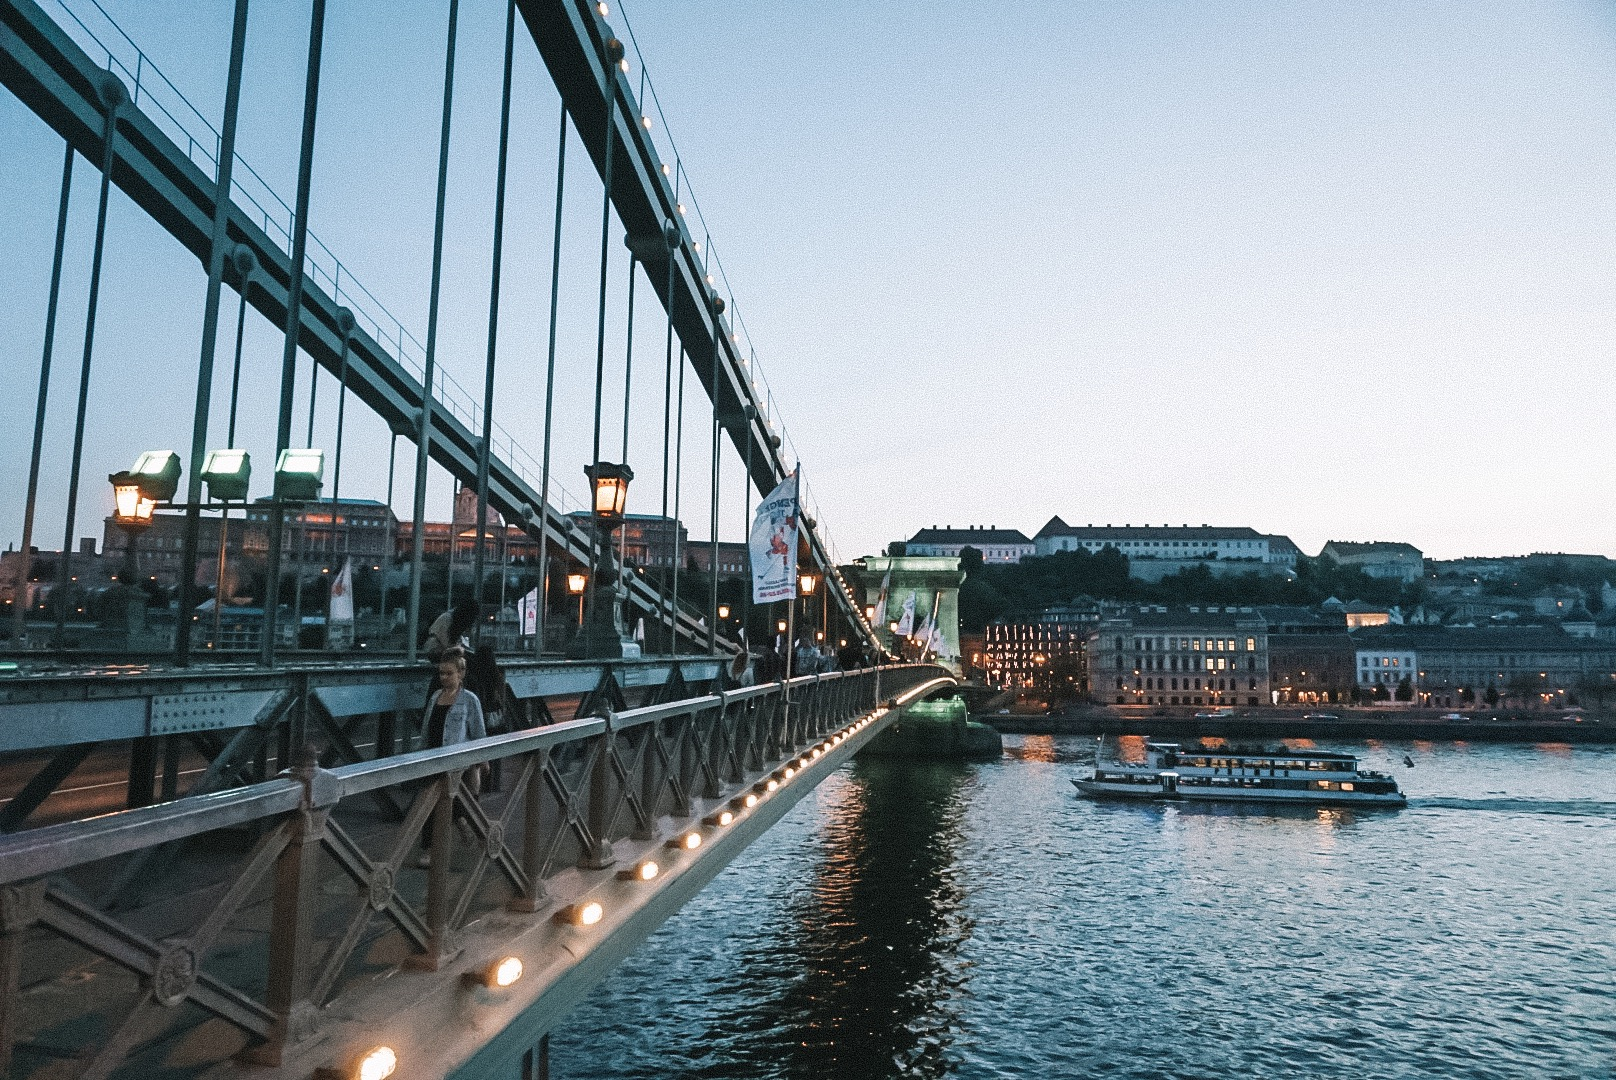 Szechenyi Chain Bridge : one of the most iconic and picturesque landmarks of Budapest.